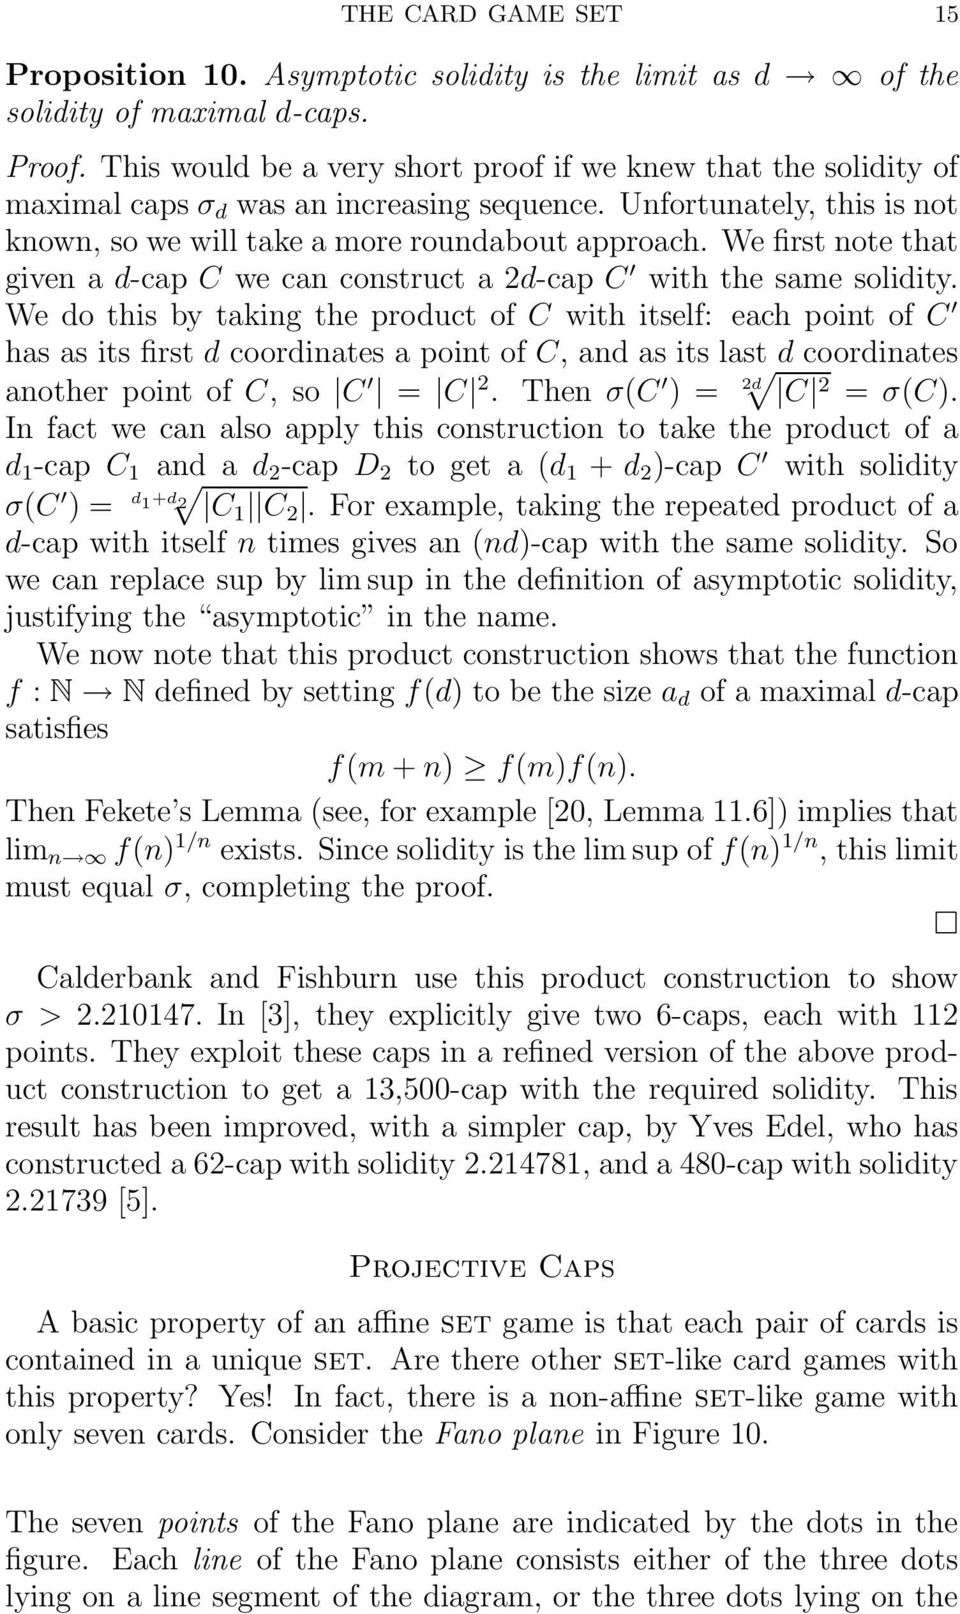 We first note that given a d-cap C we can construct a 2d-cap C with the same solidity.